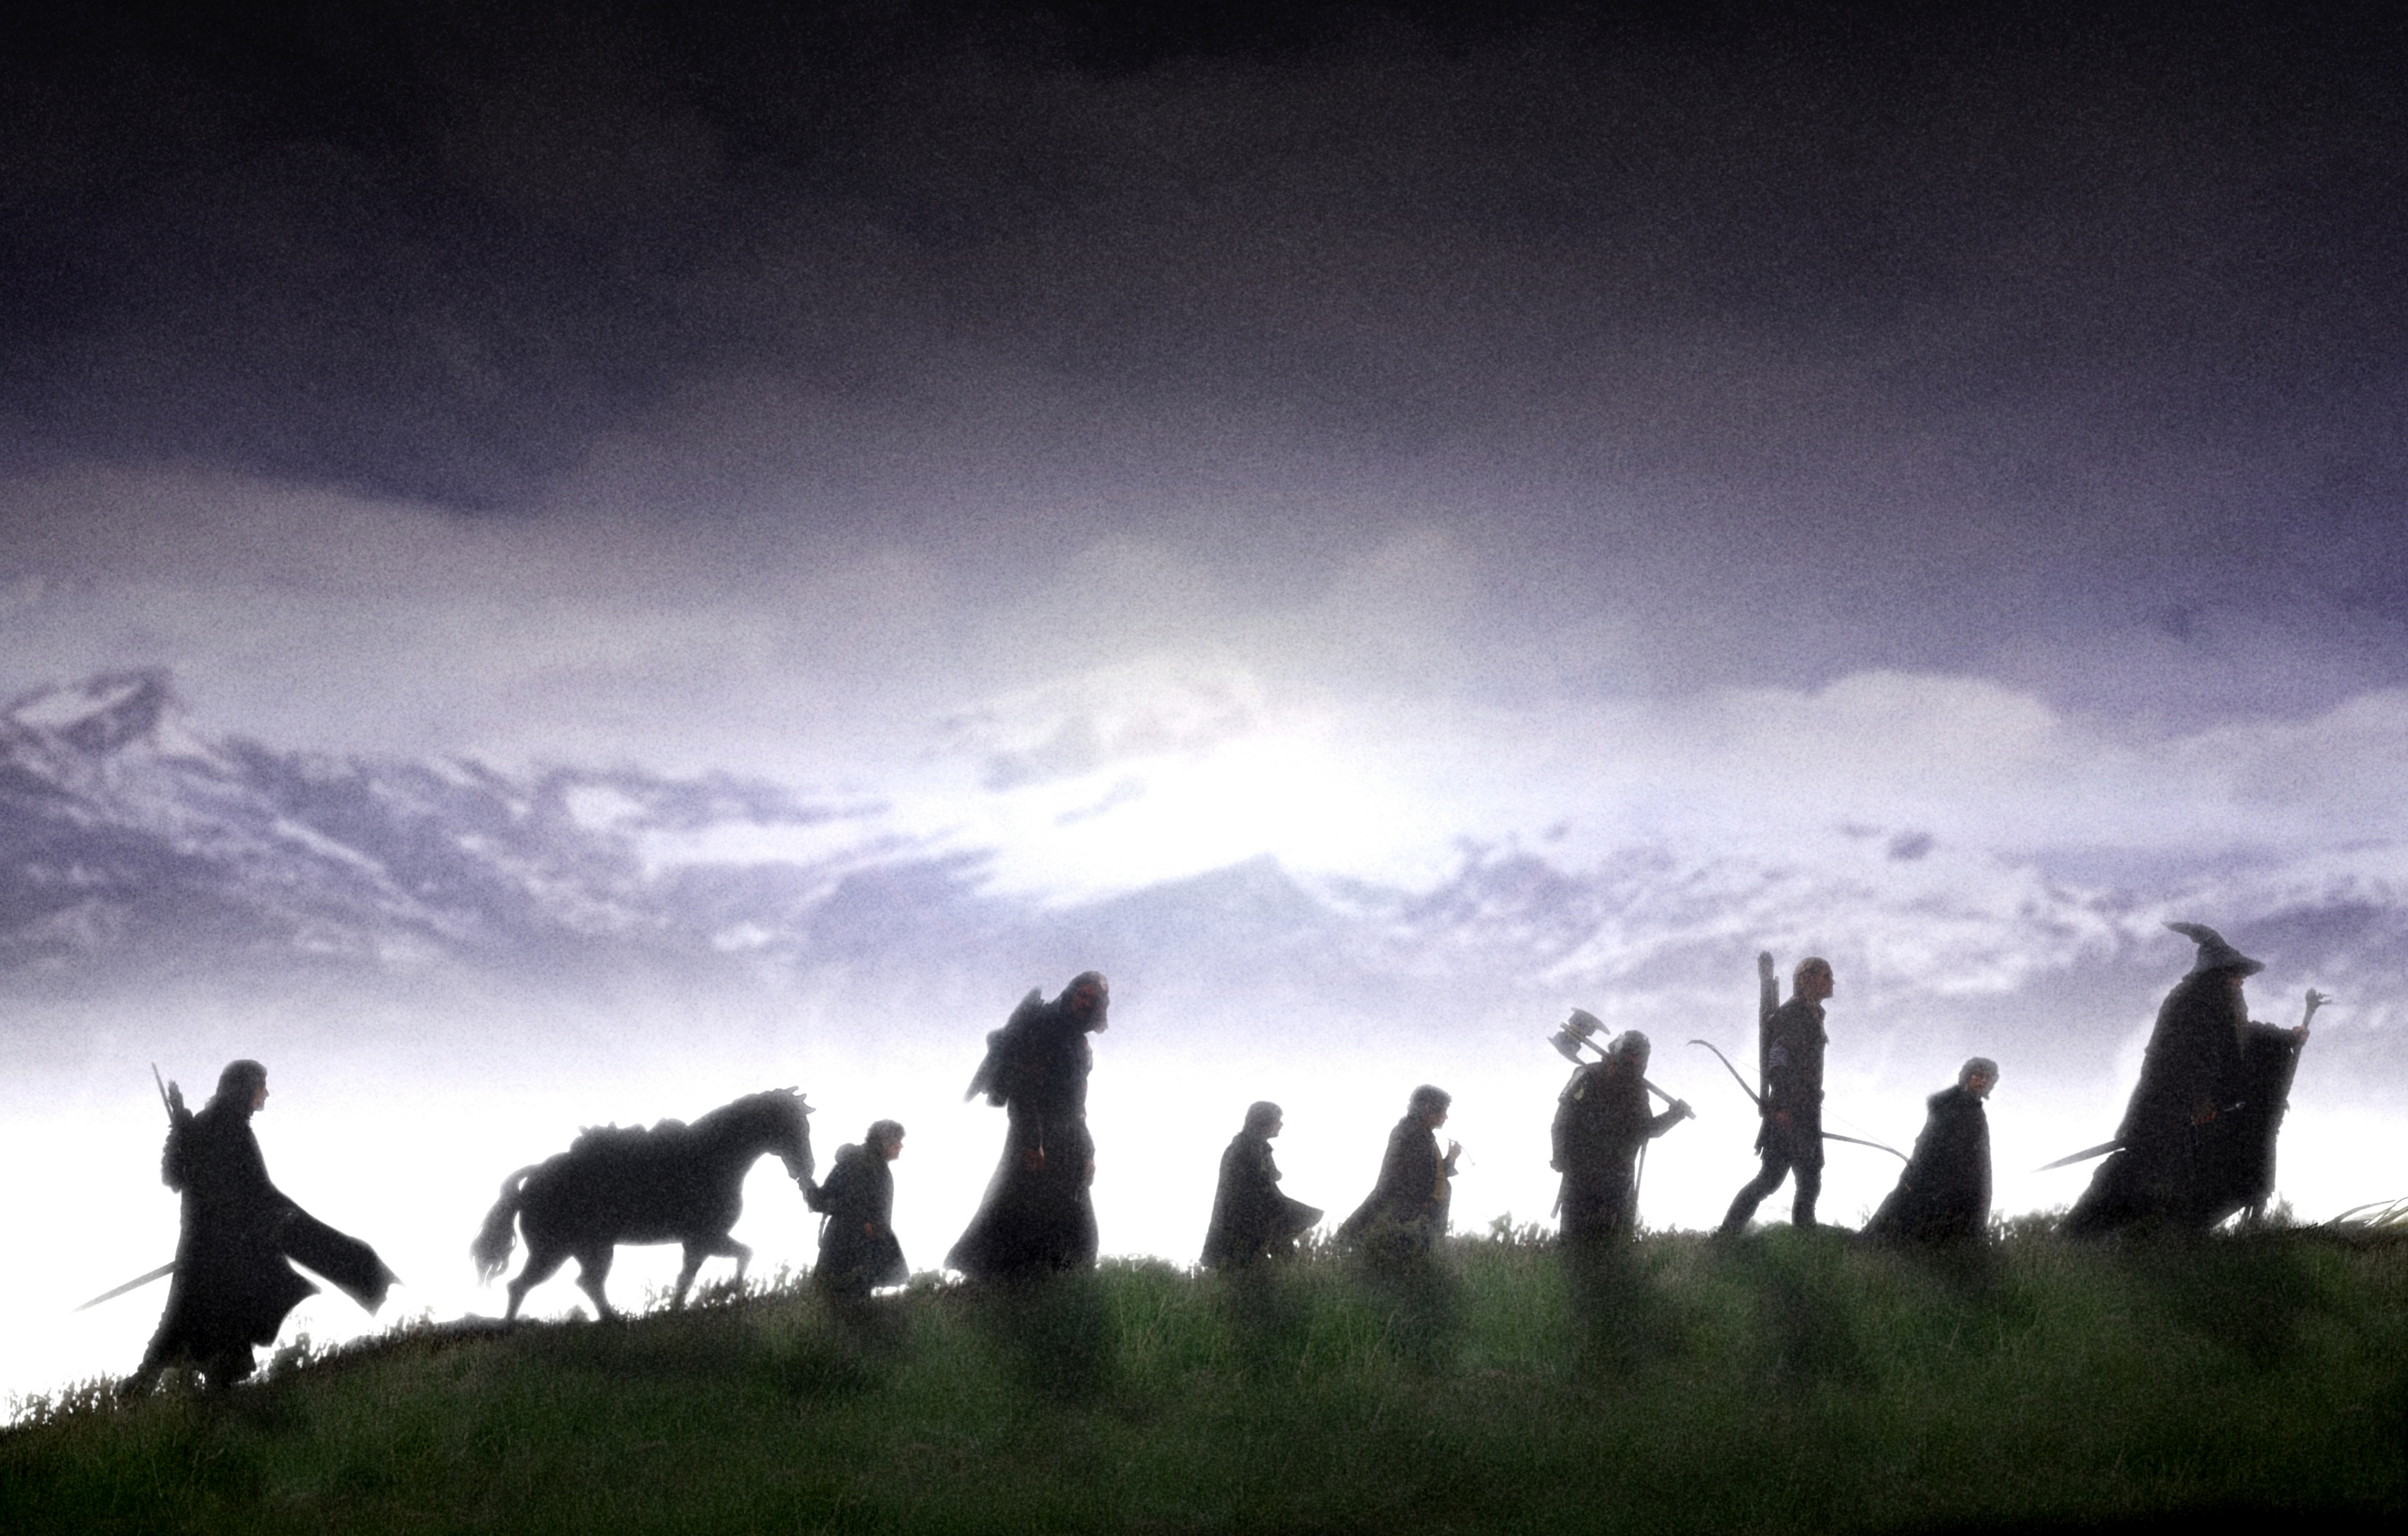 Lord of the Rings Silhouette